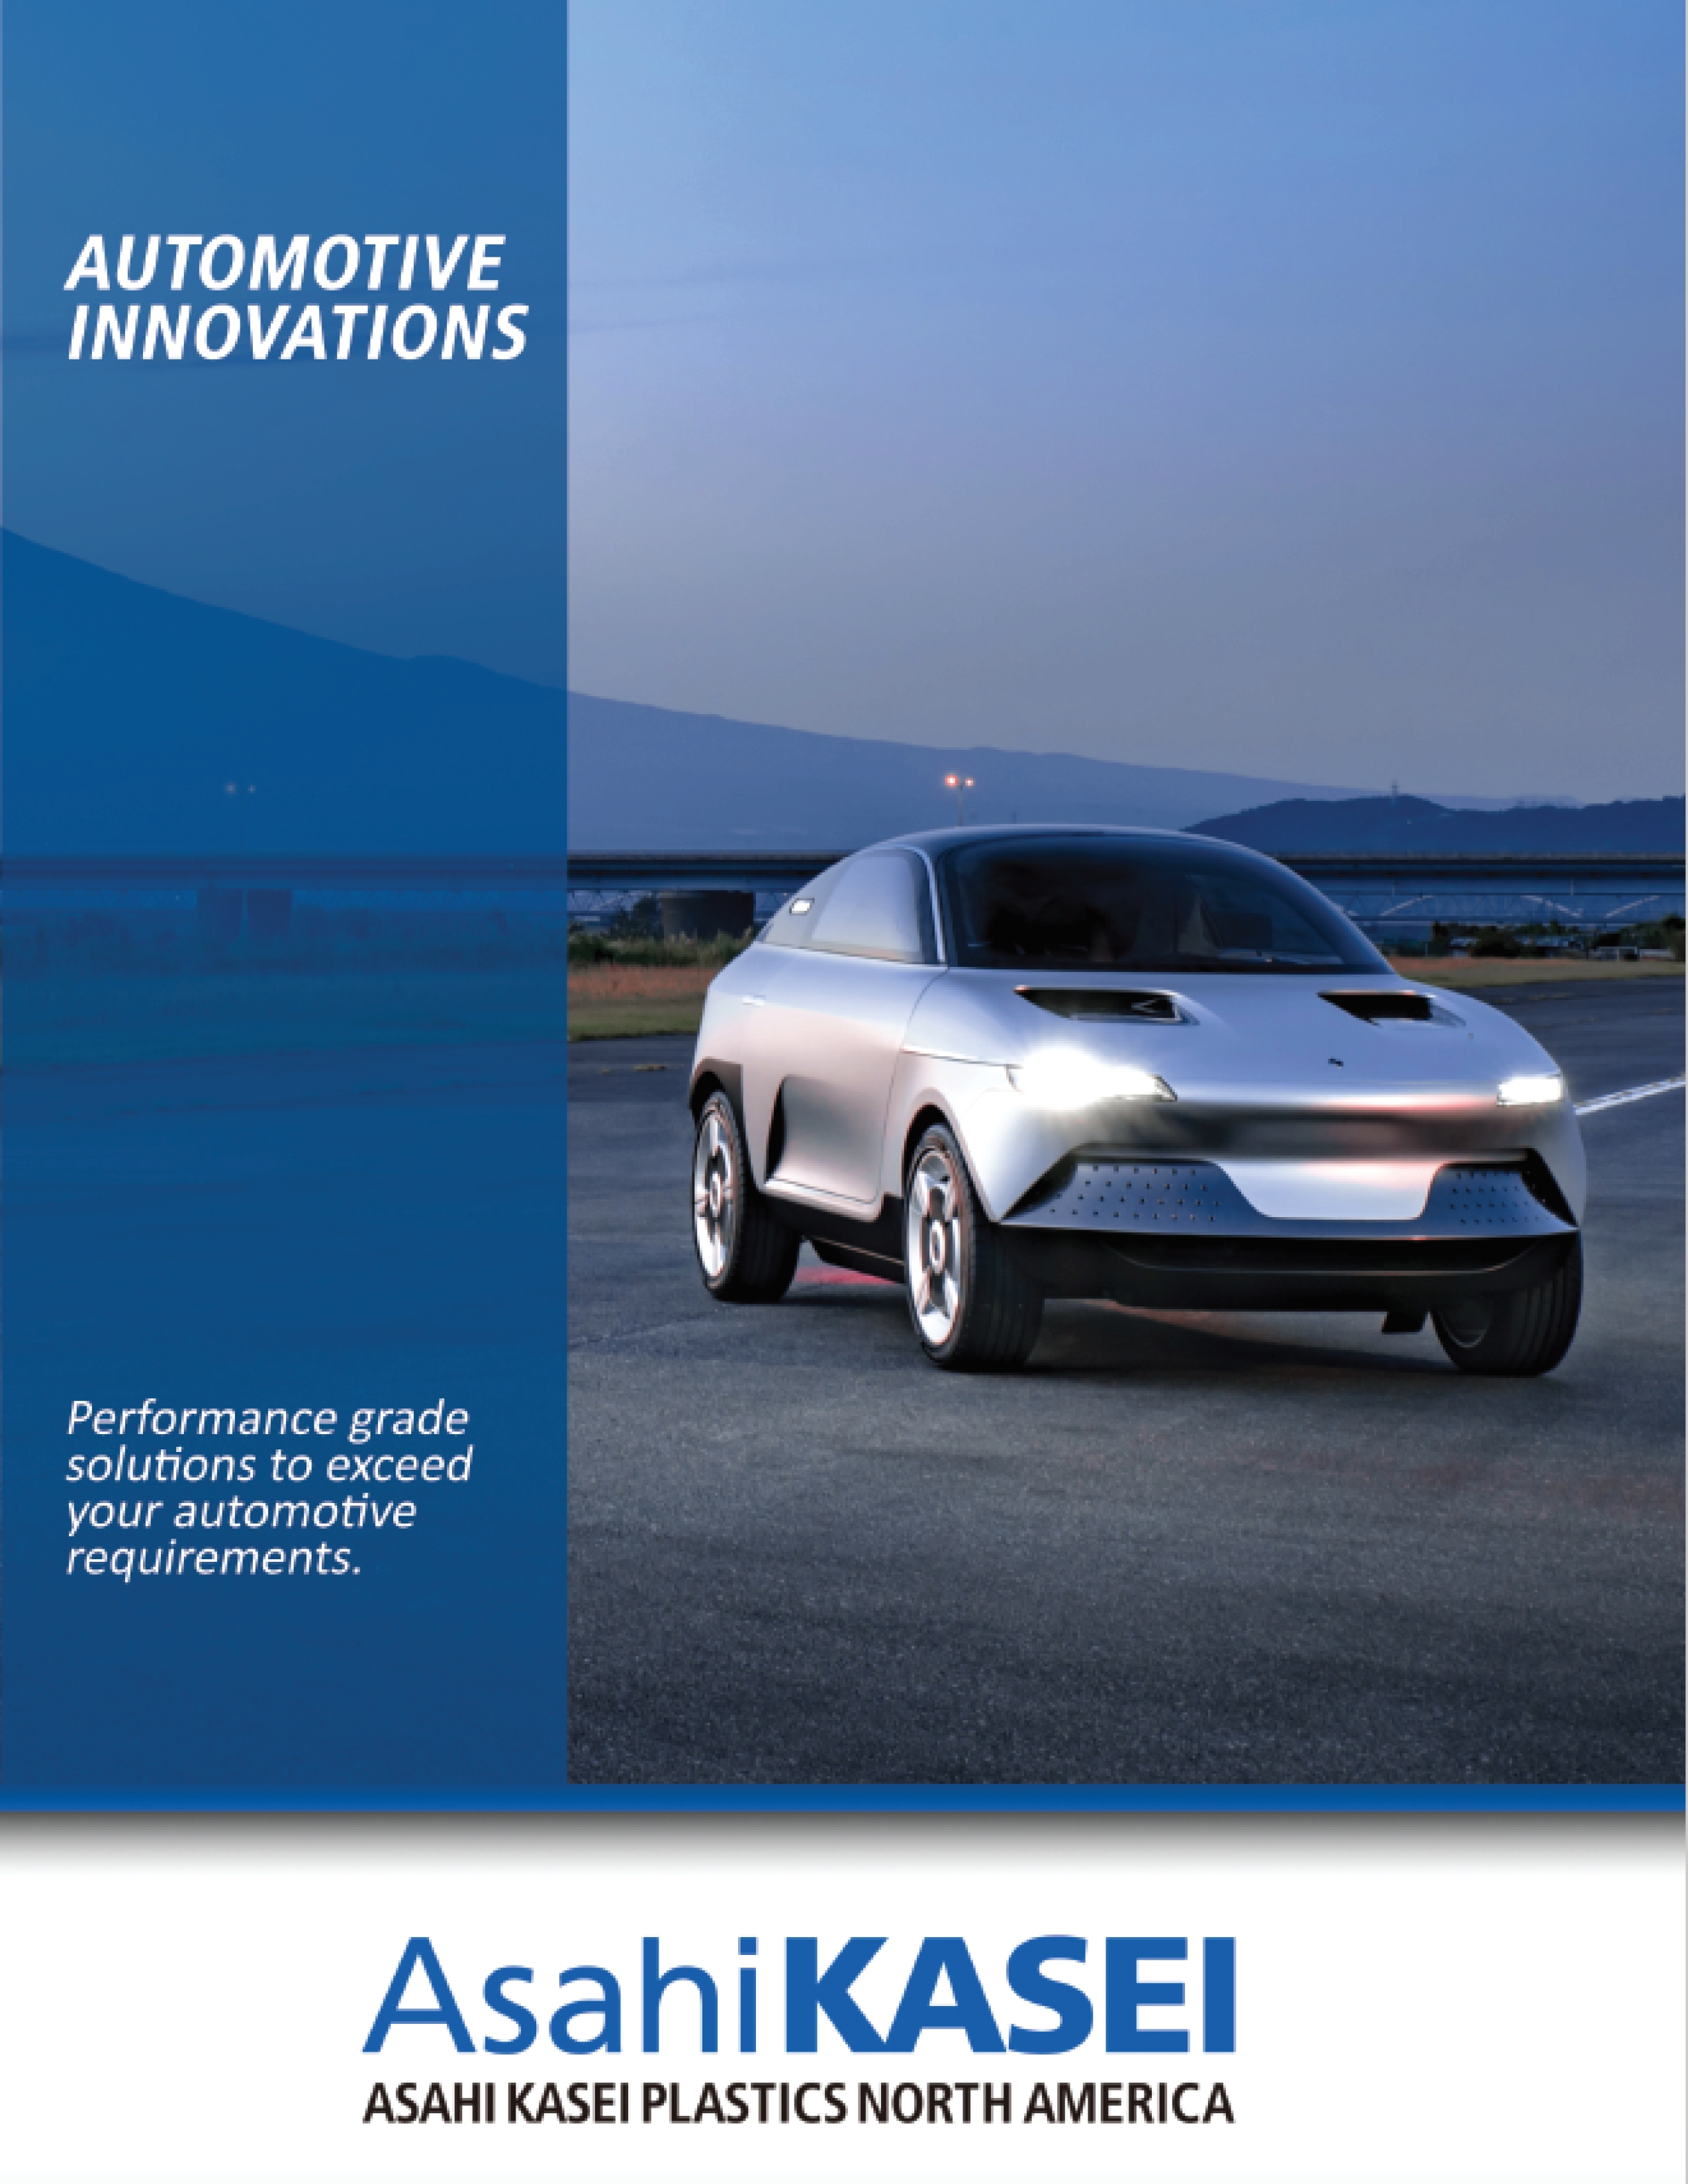 Performance grade solutions to exceed your automotive requirements